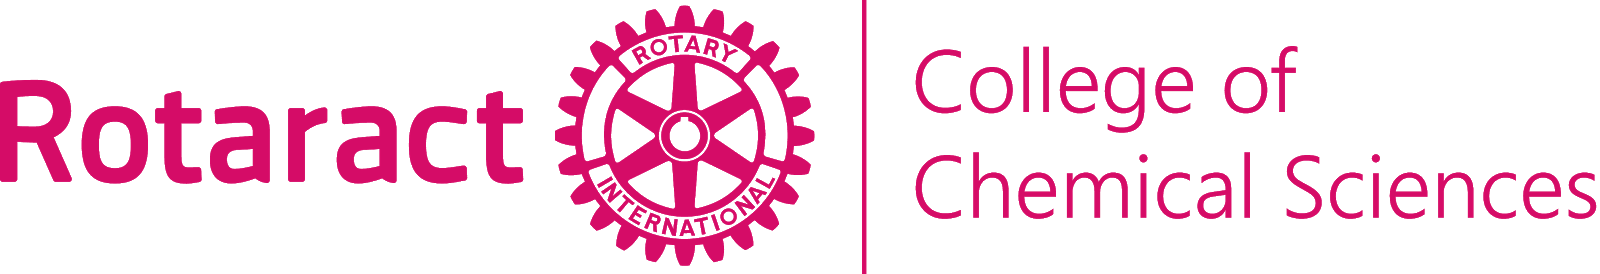 Rotaract Club of College of Chemical Sciences